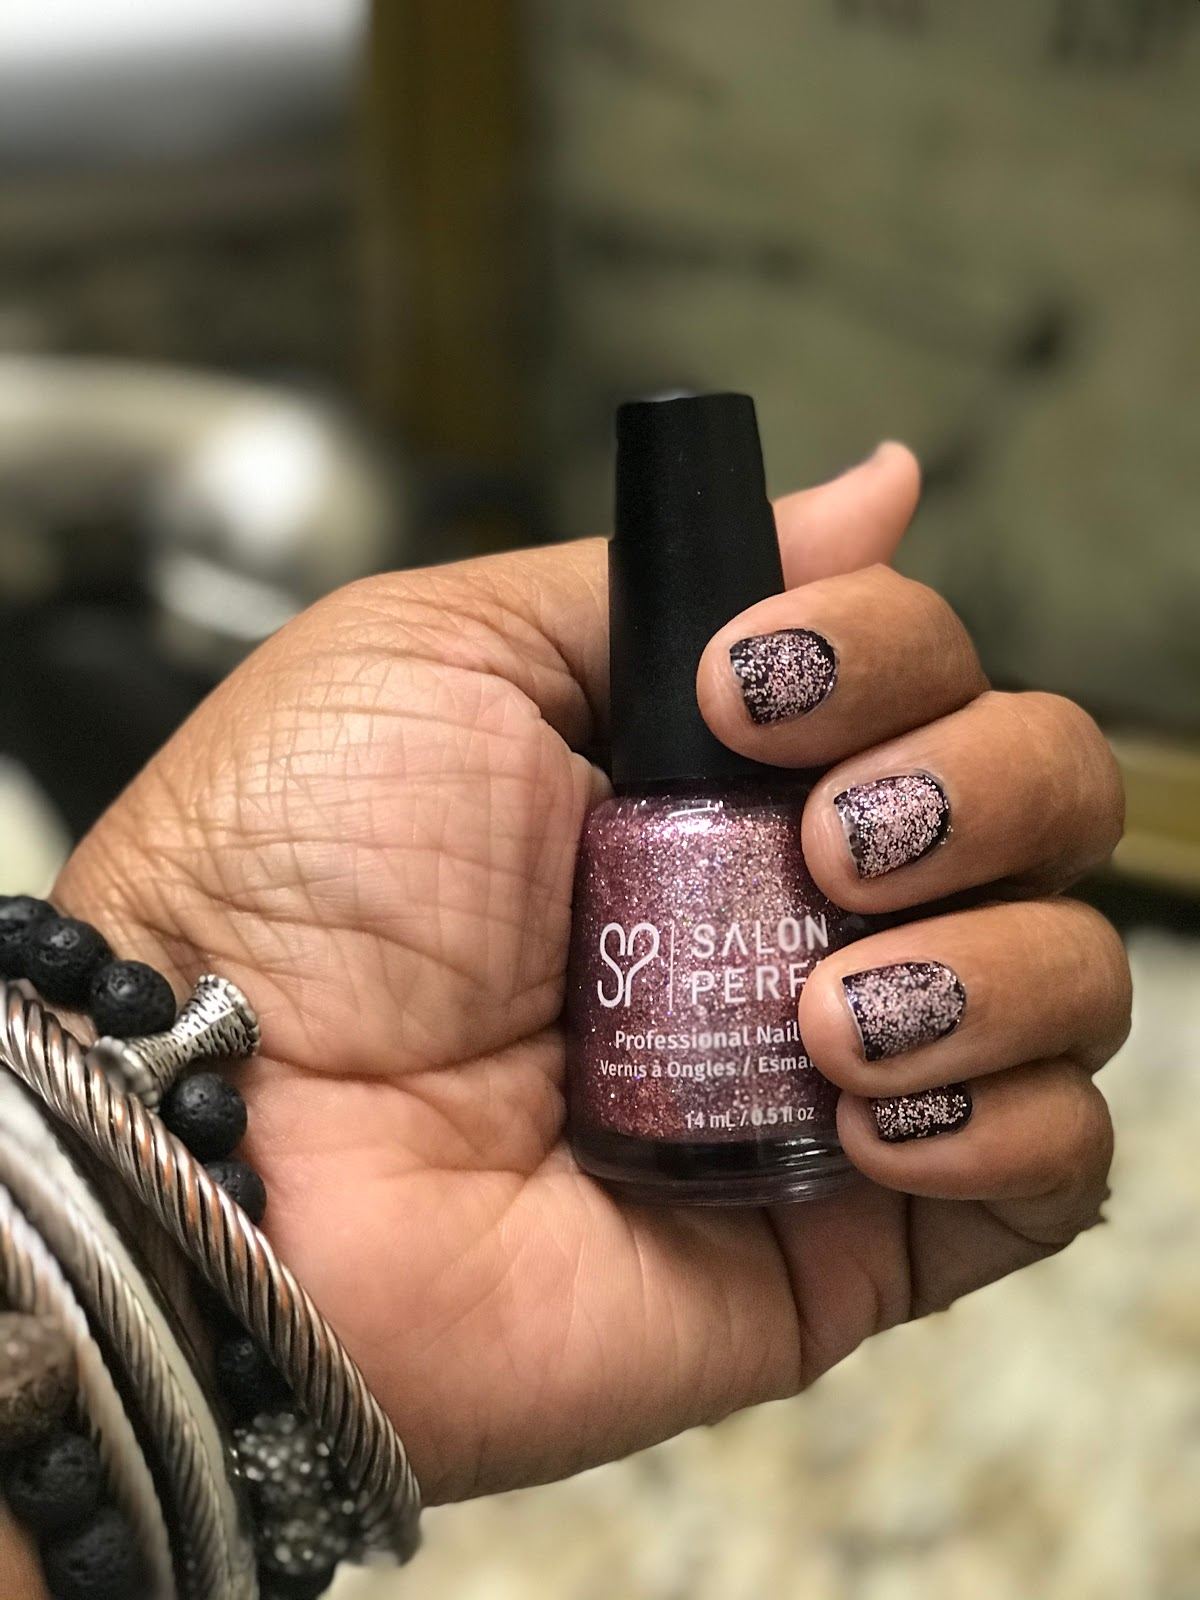 Image: Tangie sharing her bits on how she polished her nails. Weekend Bits And Favorites 26:The Recapping Post!